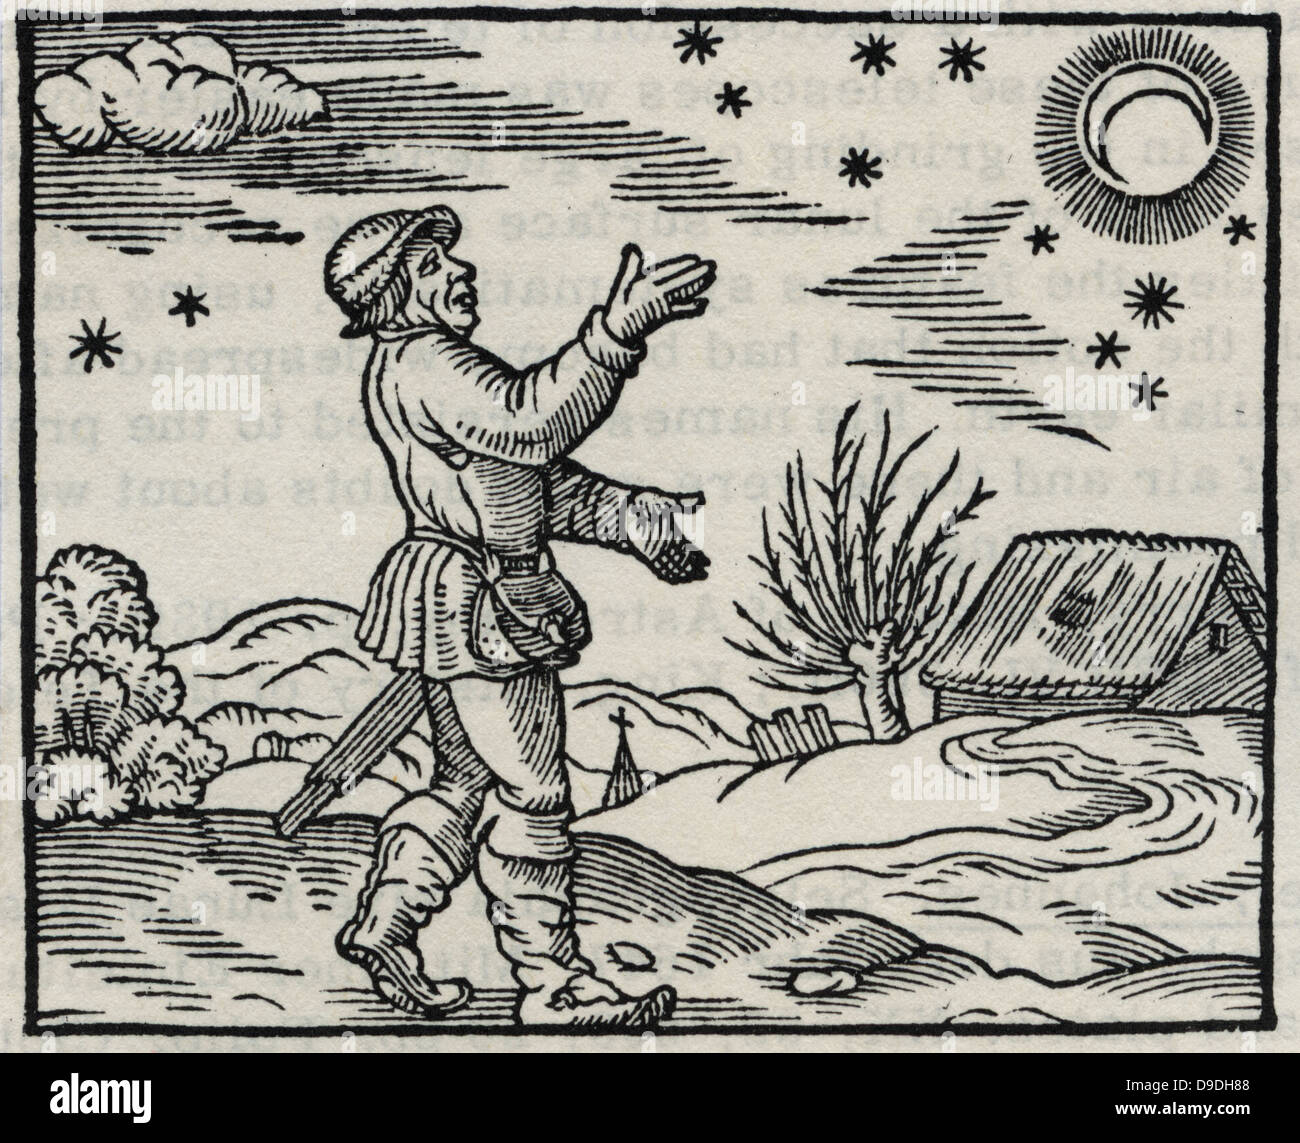 Farmer or countryman observing the Moon and stars. Mid-sixteenth century woodcut. - Stock Image